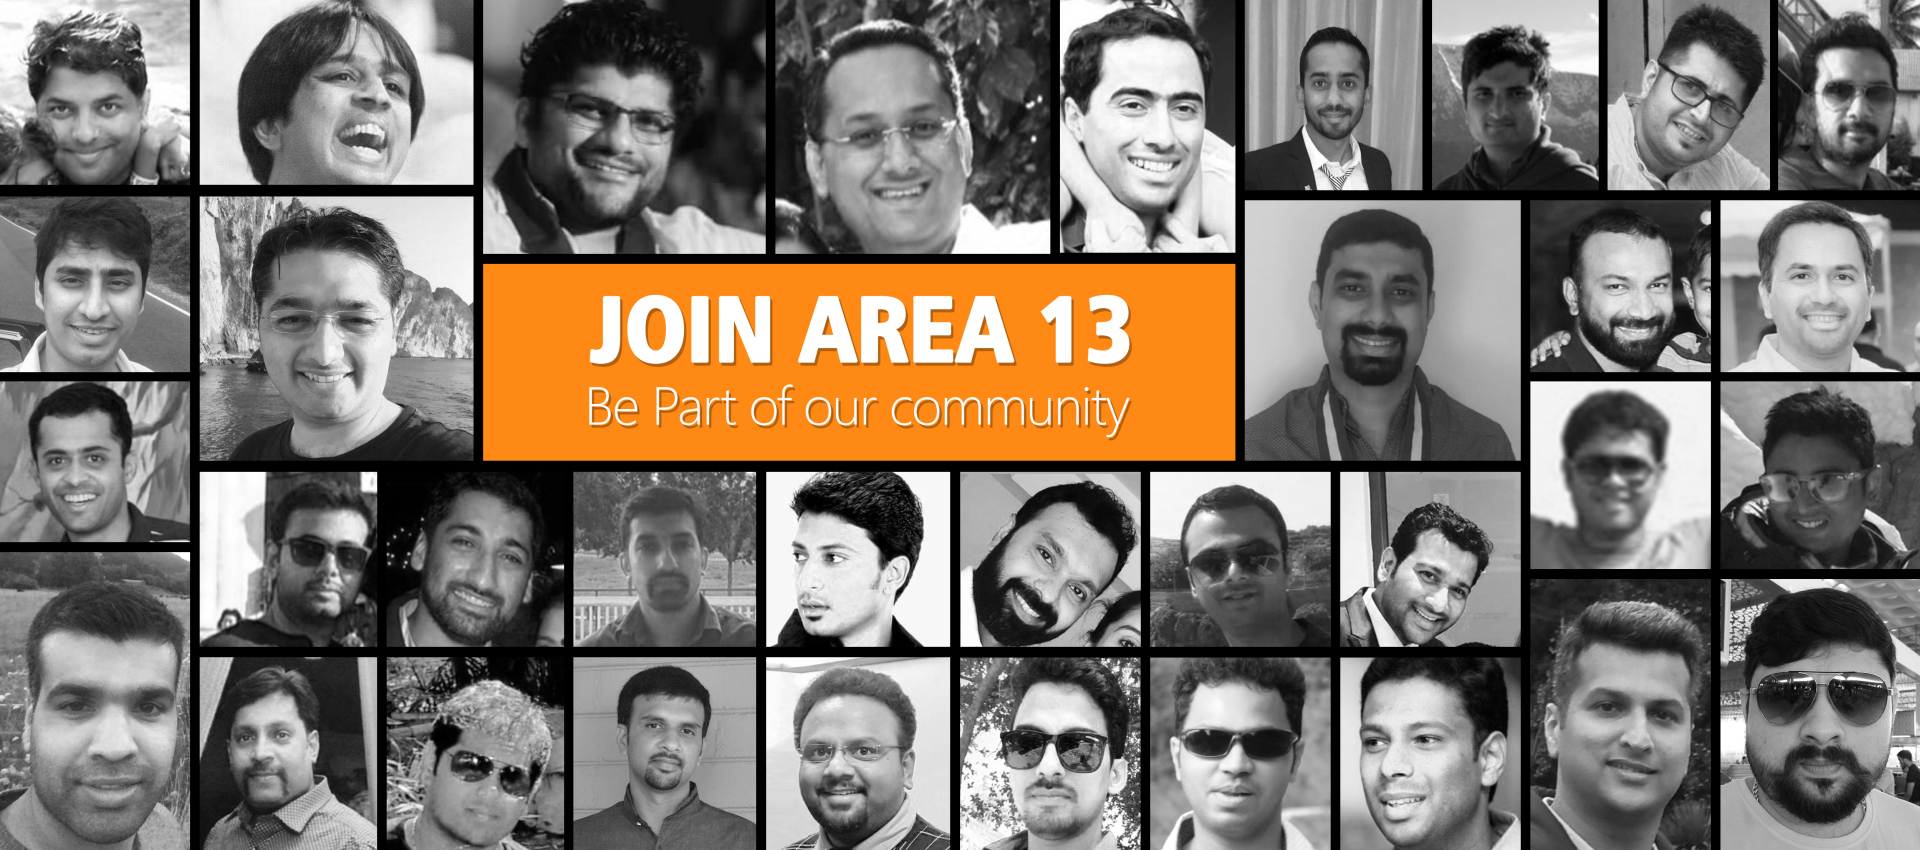 Join Area 13 Collage